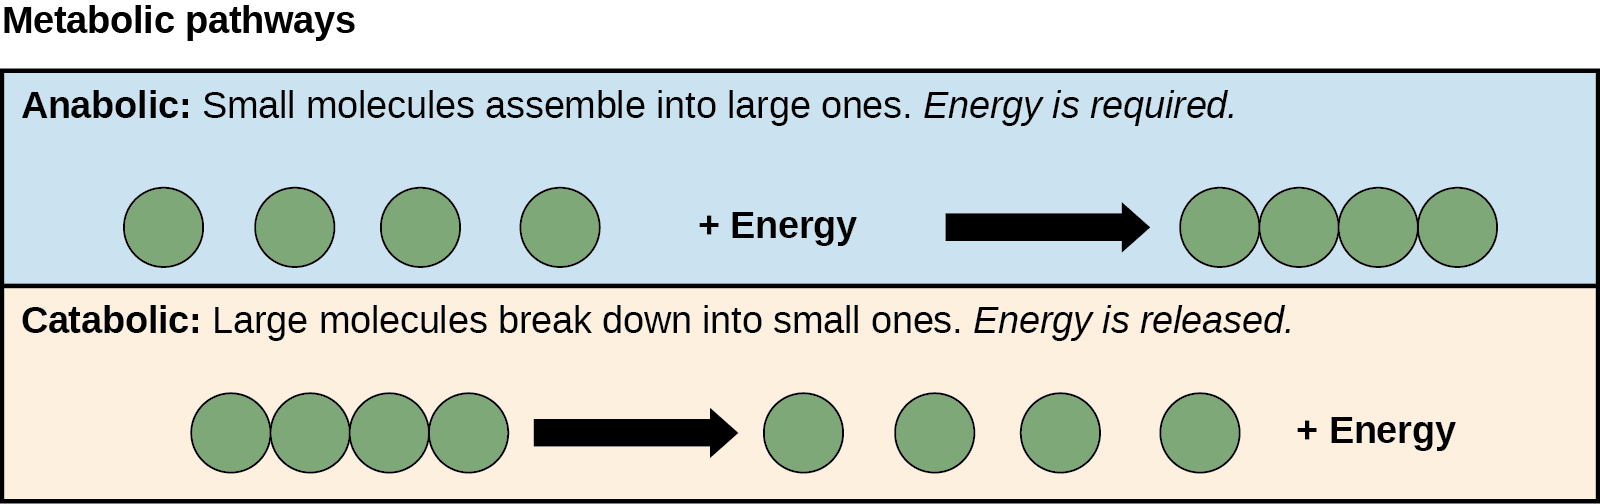 Anabolic and catabolic pathways are shown. In the anabolic pathway (top), four small molecules have energy added to them to make one large molecule. In the catabolic pathway (bottom), one large molecule is broken down into two components: four small molecules plus energy.